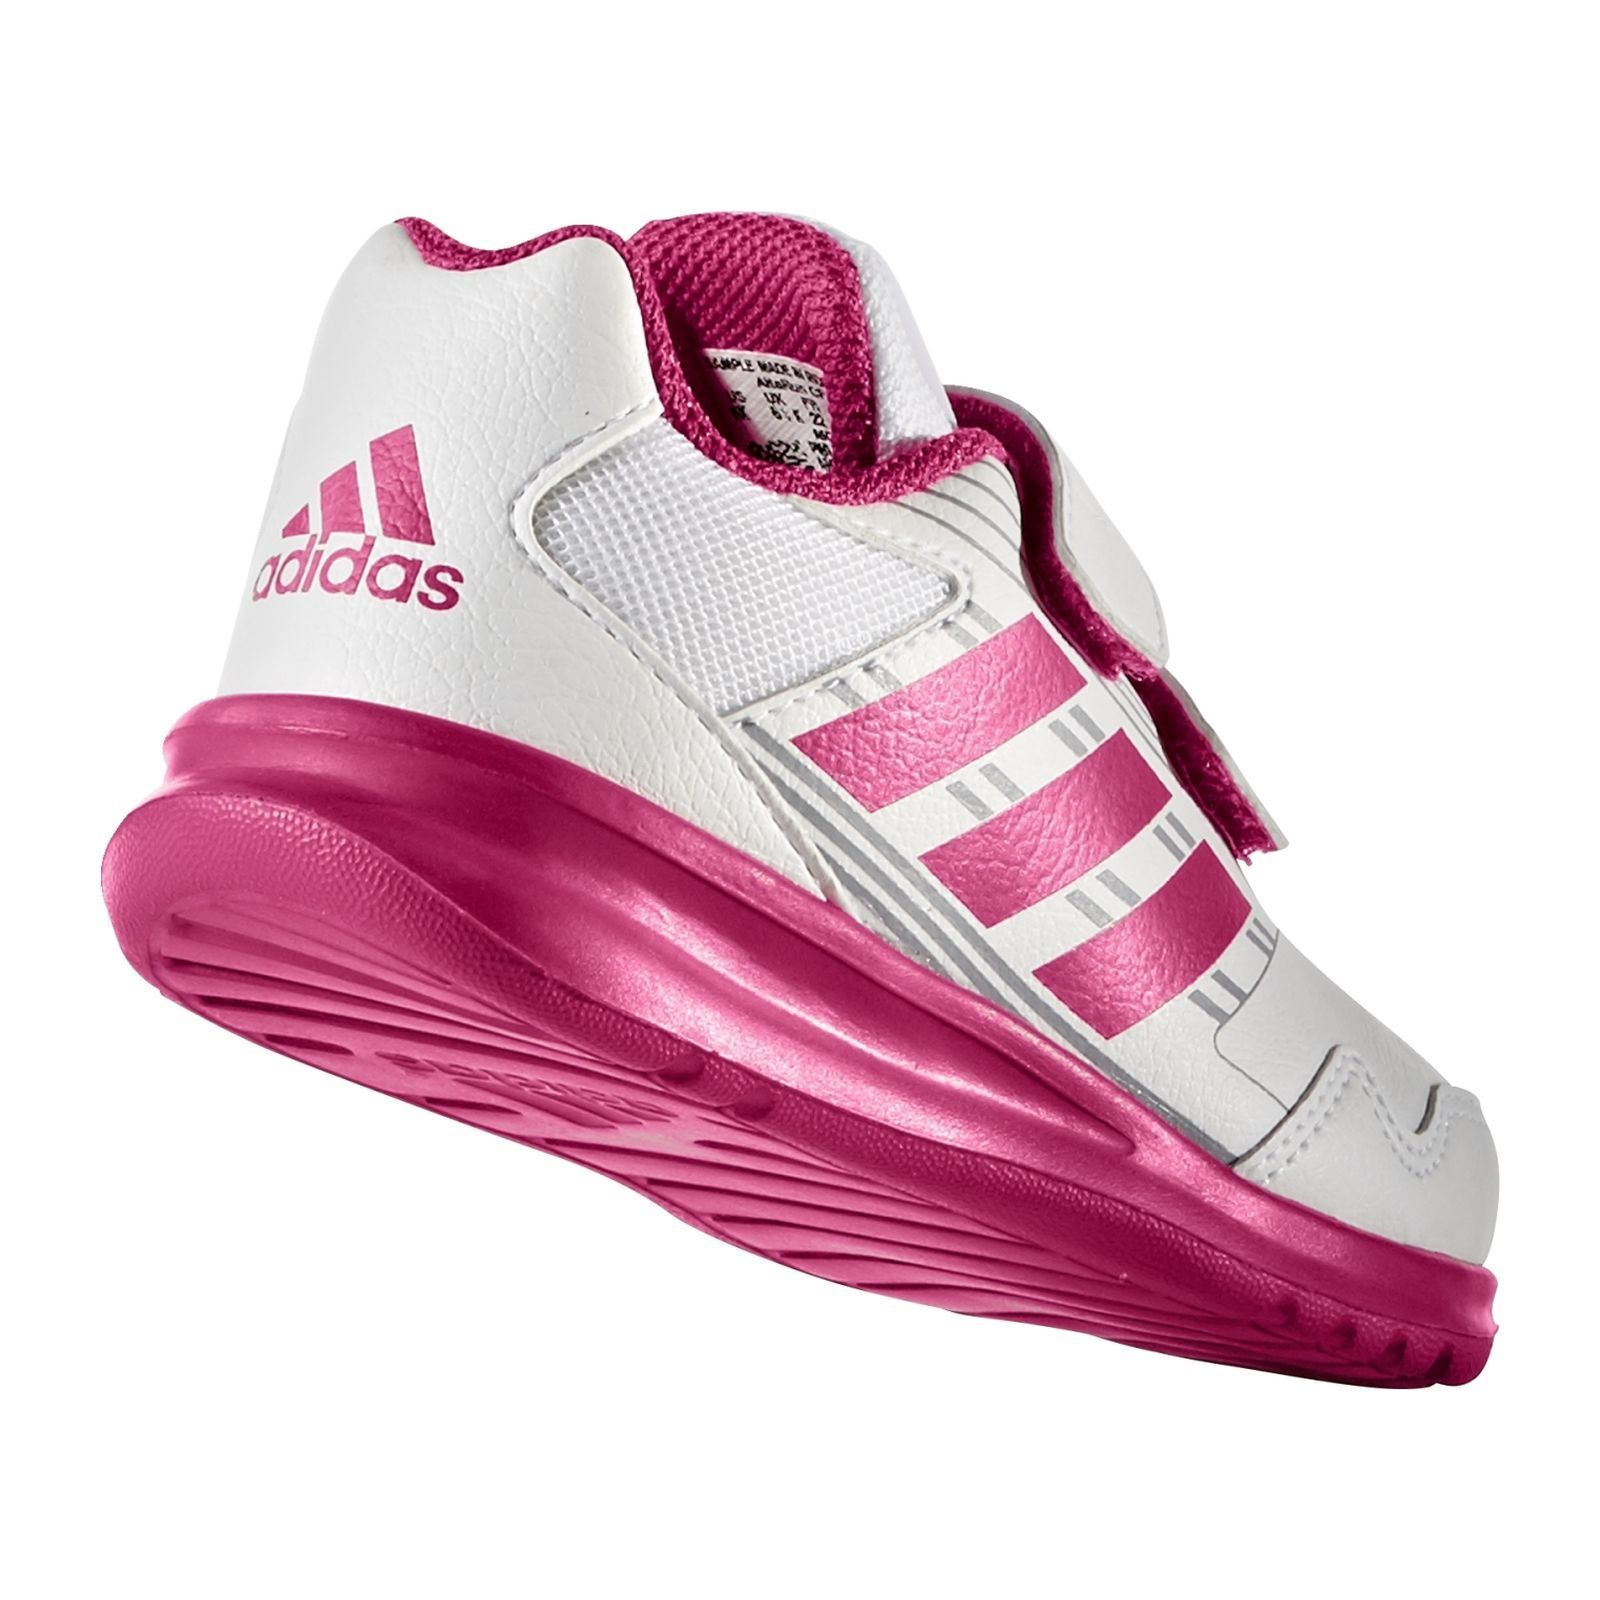 adidas performance altarun cf i turnschuhe sneakers rosa brandalley. Black Bedroom Furniture Sets. Home Design Ideas